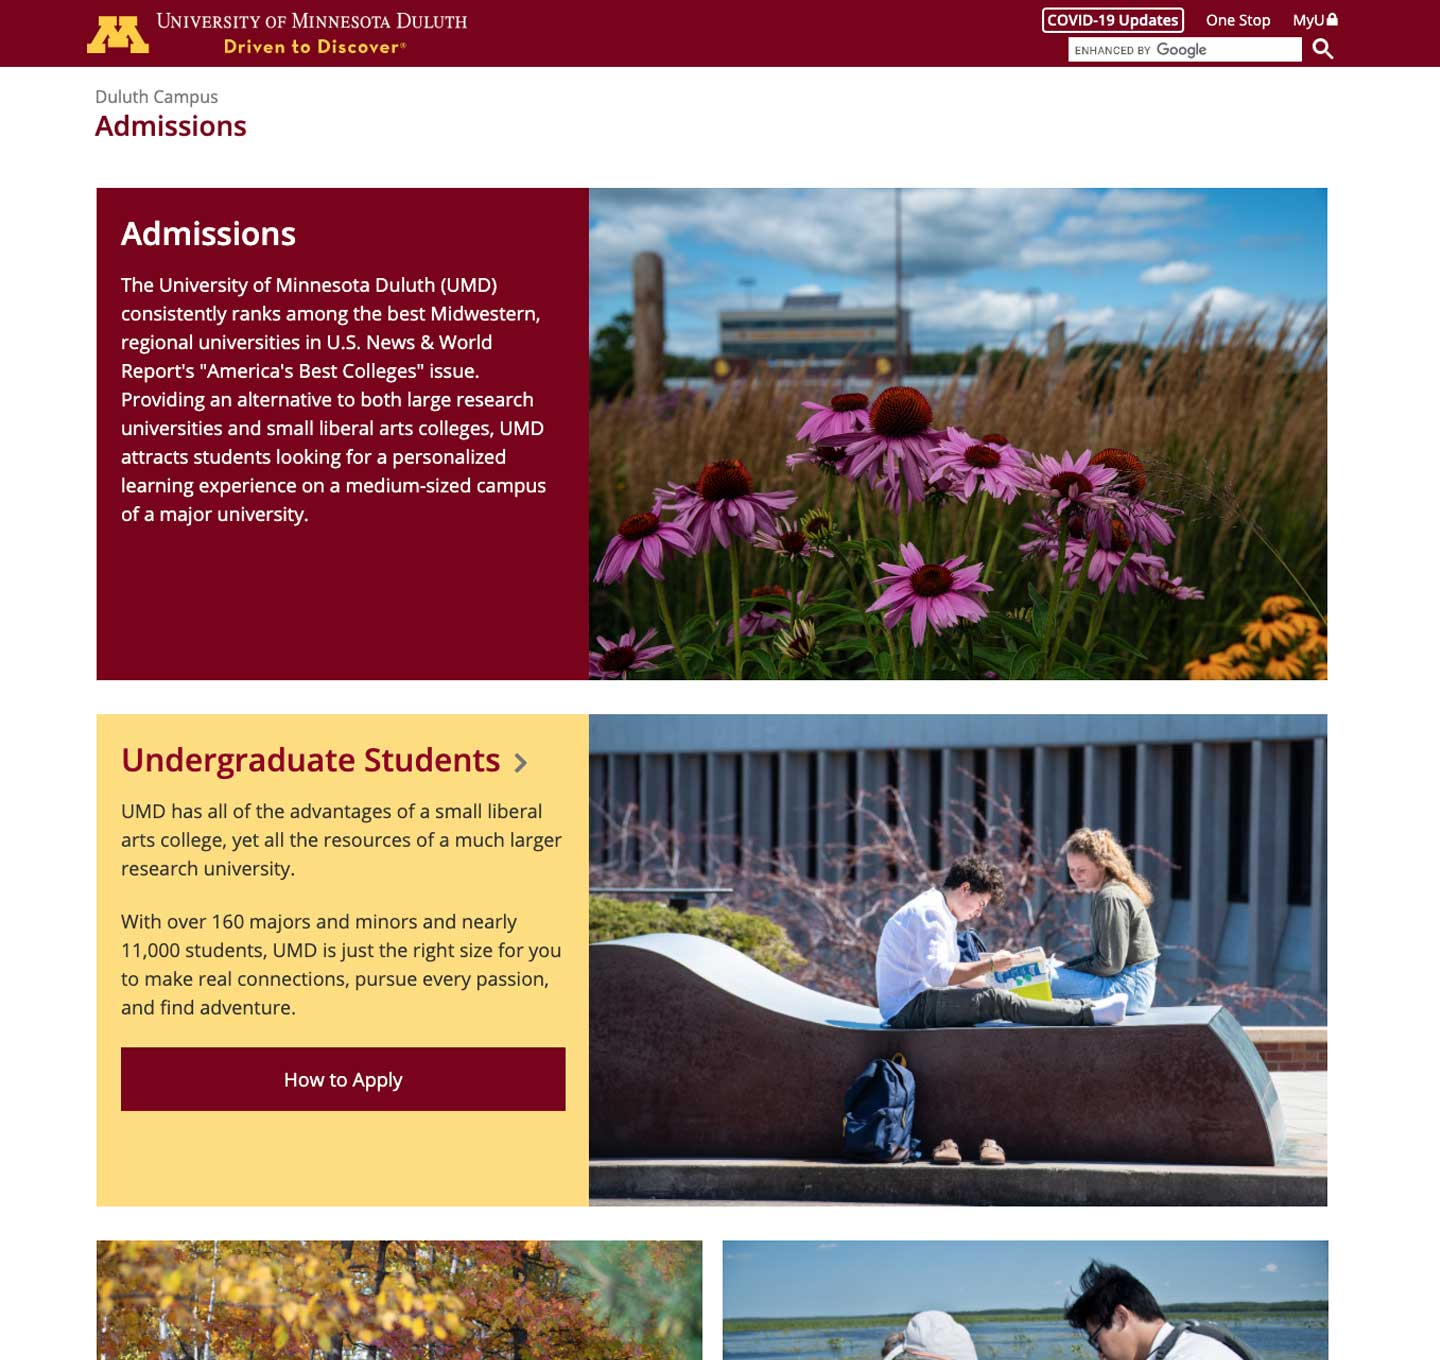 Duluth admissions website screenshot